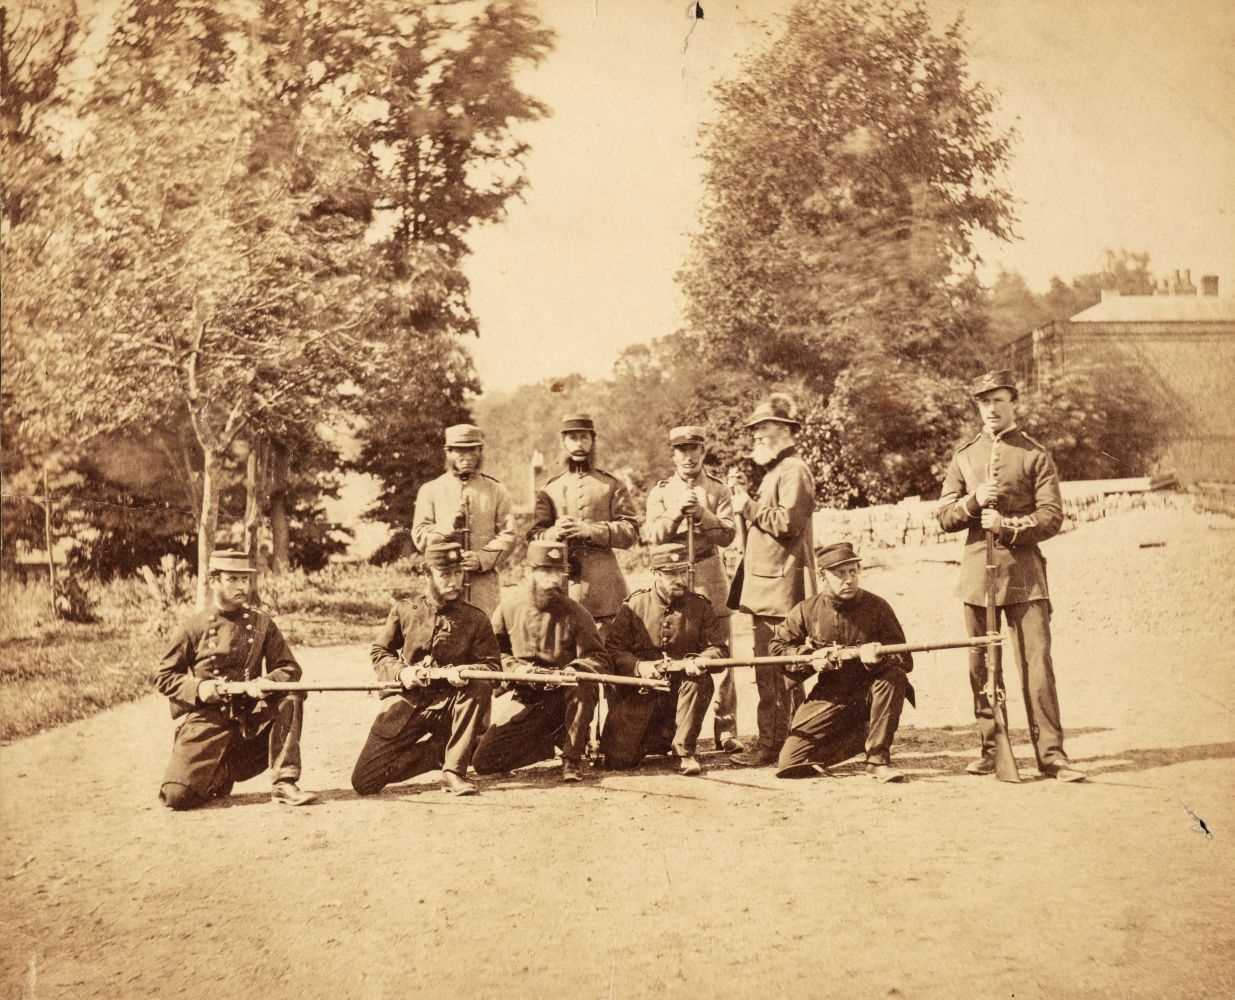 Lot 3 - American Civil War. Two albumen print photographs of Union Army soldiers, c.1861-5